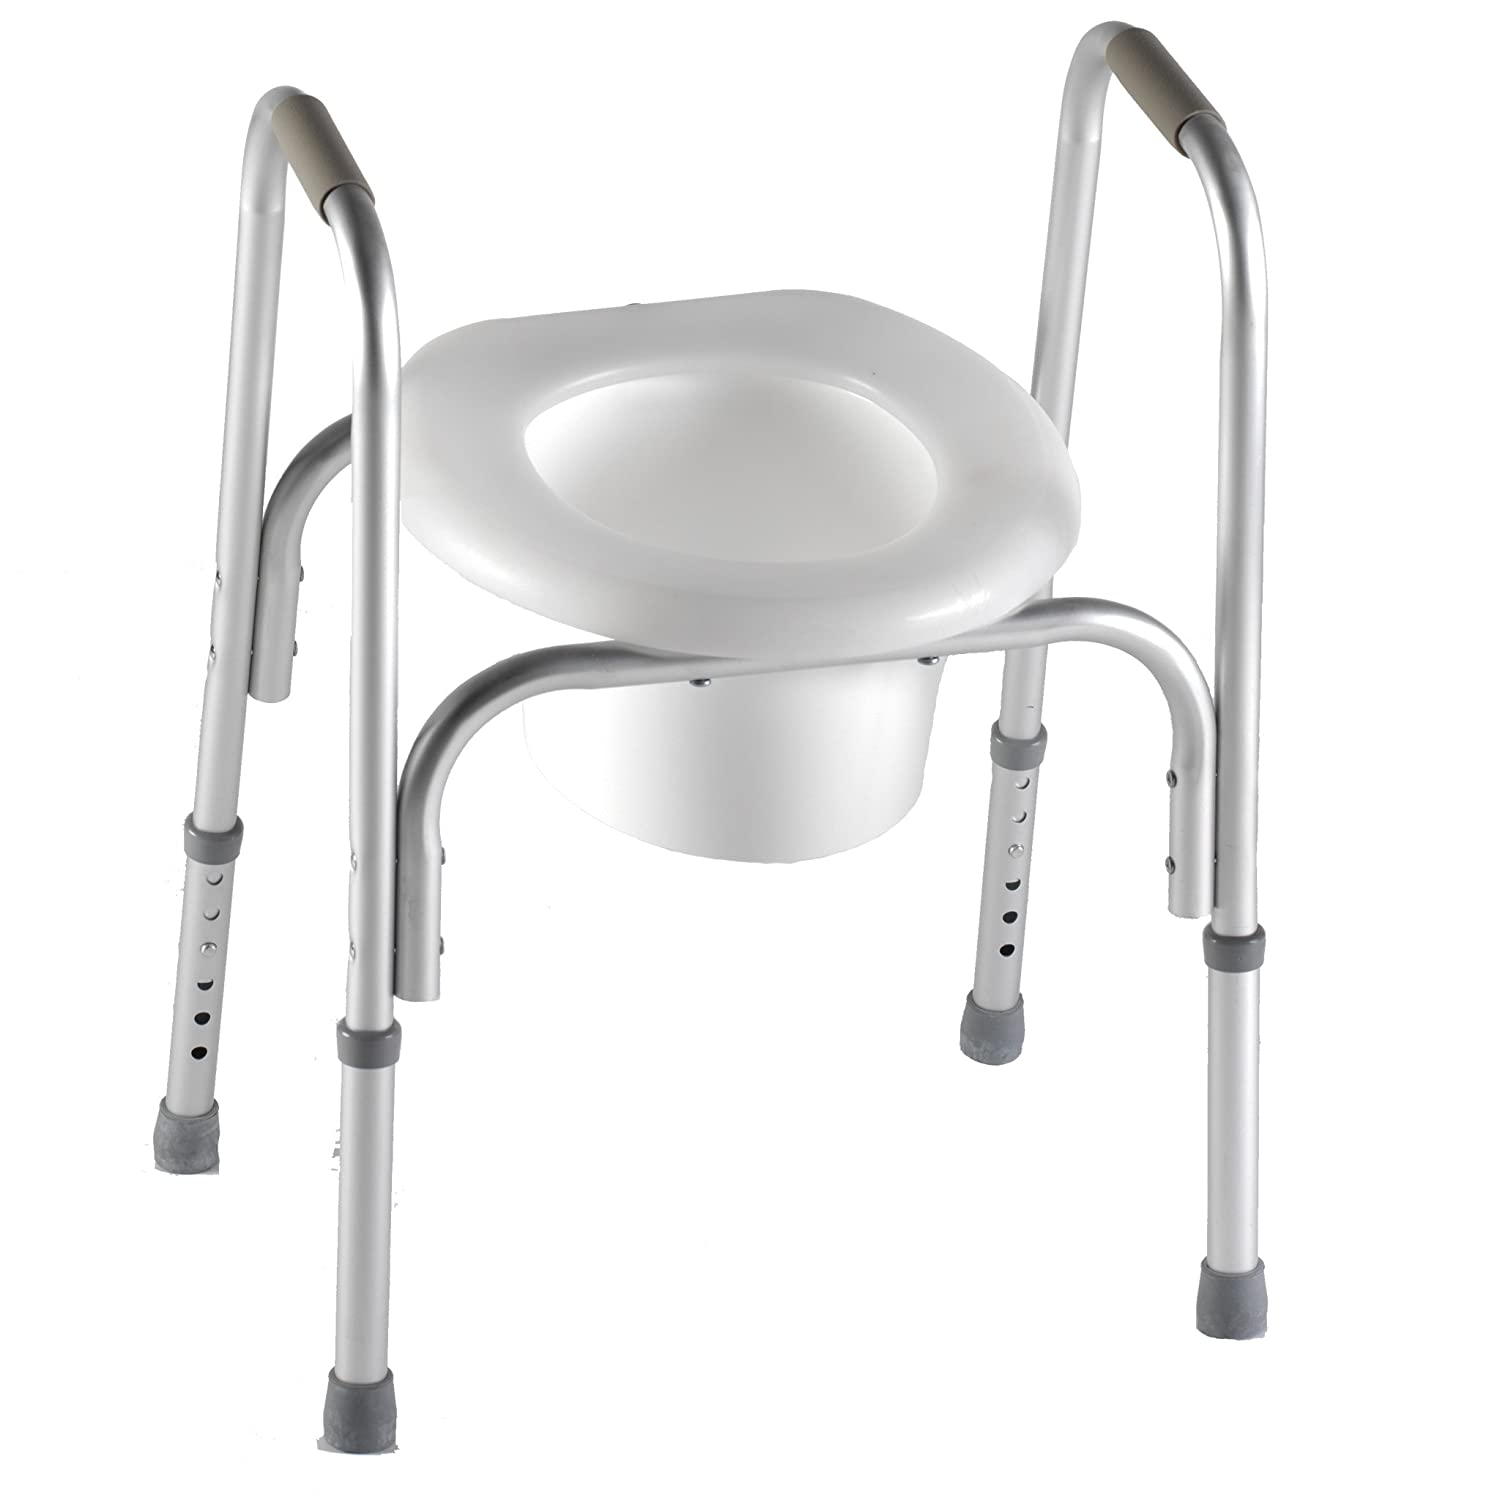 Amazon.com: PCP Raised Toilet Seat with Safety Frame Two-in-One ...